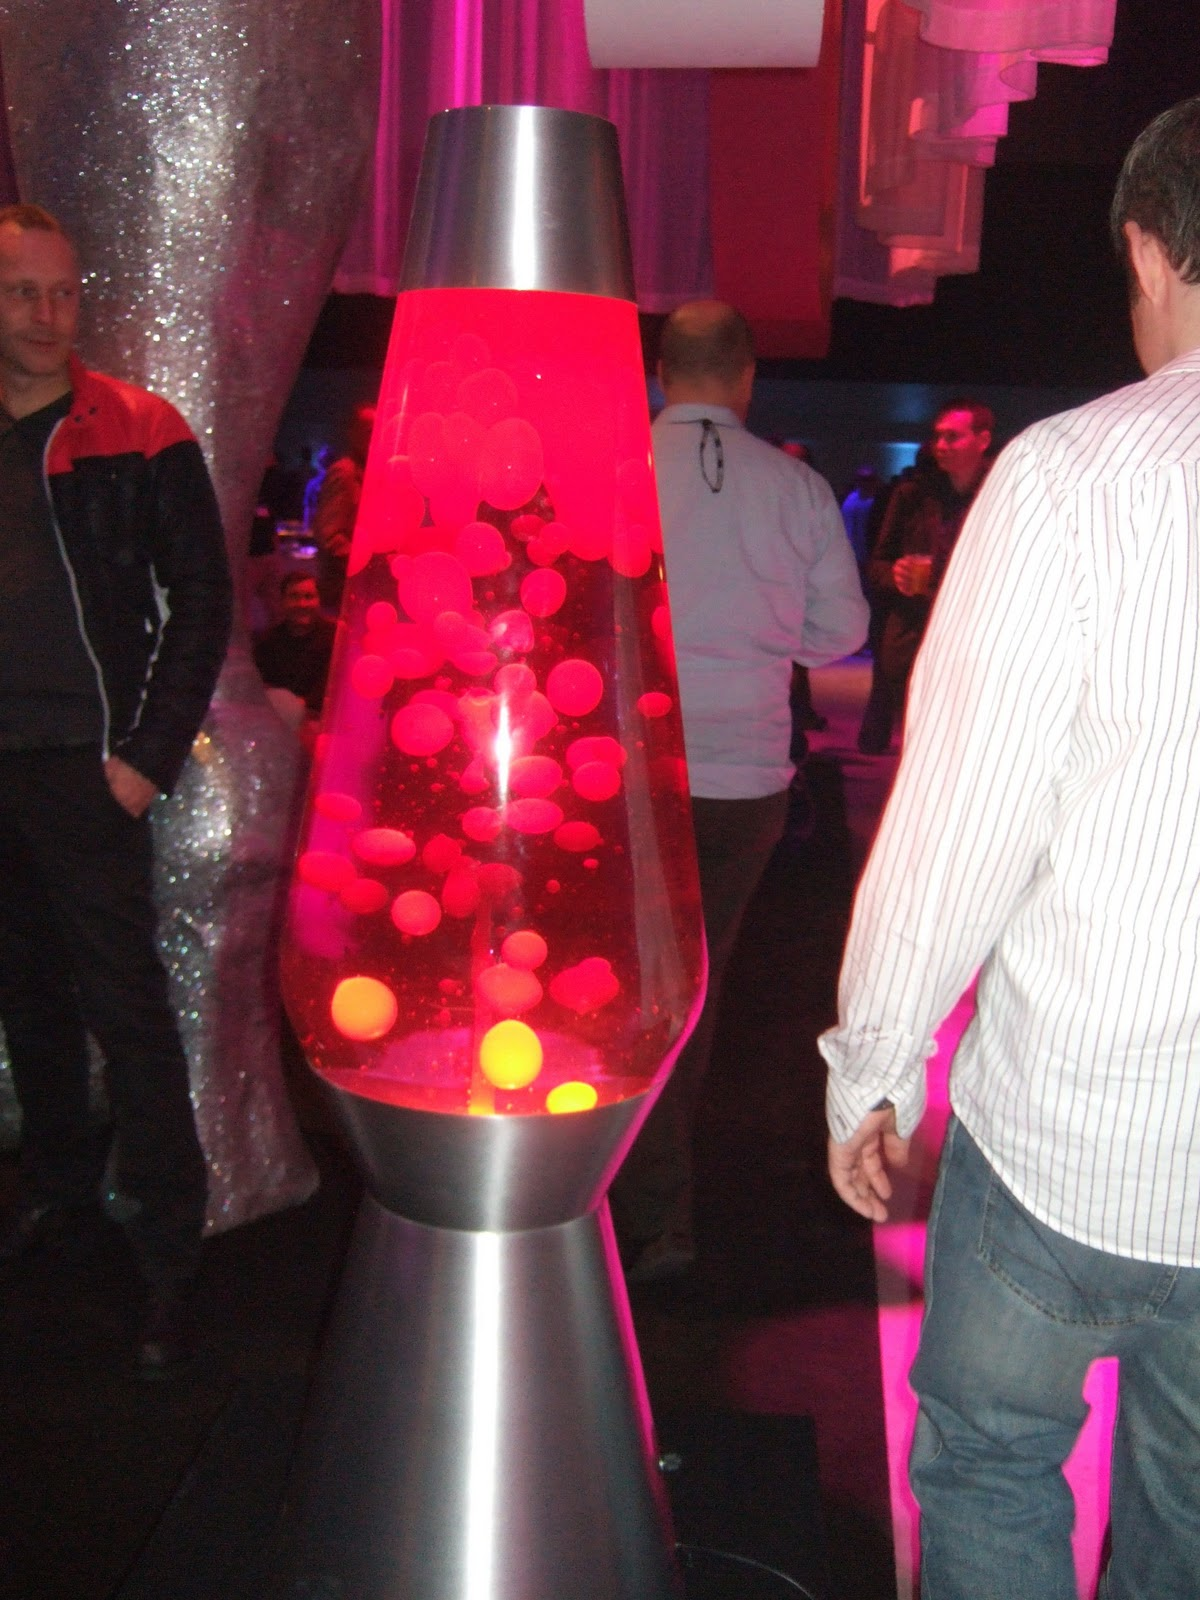 Lava lamp large - How Bright Are They